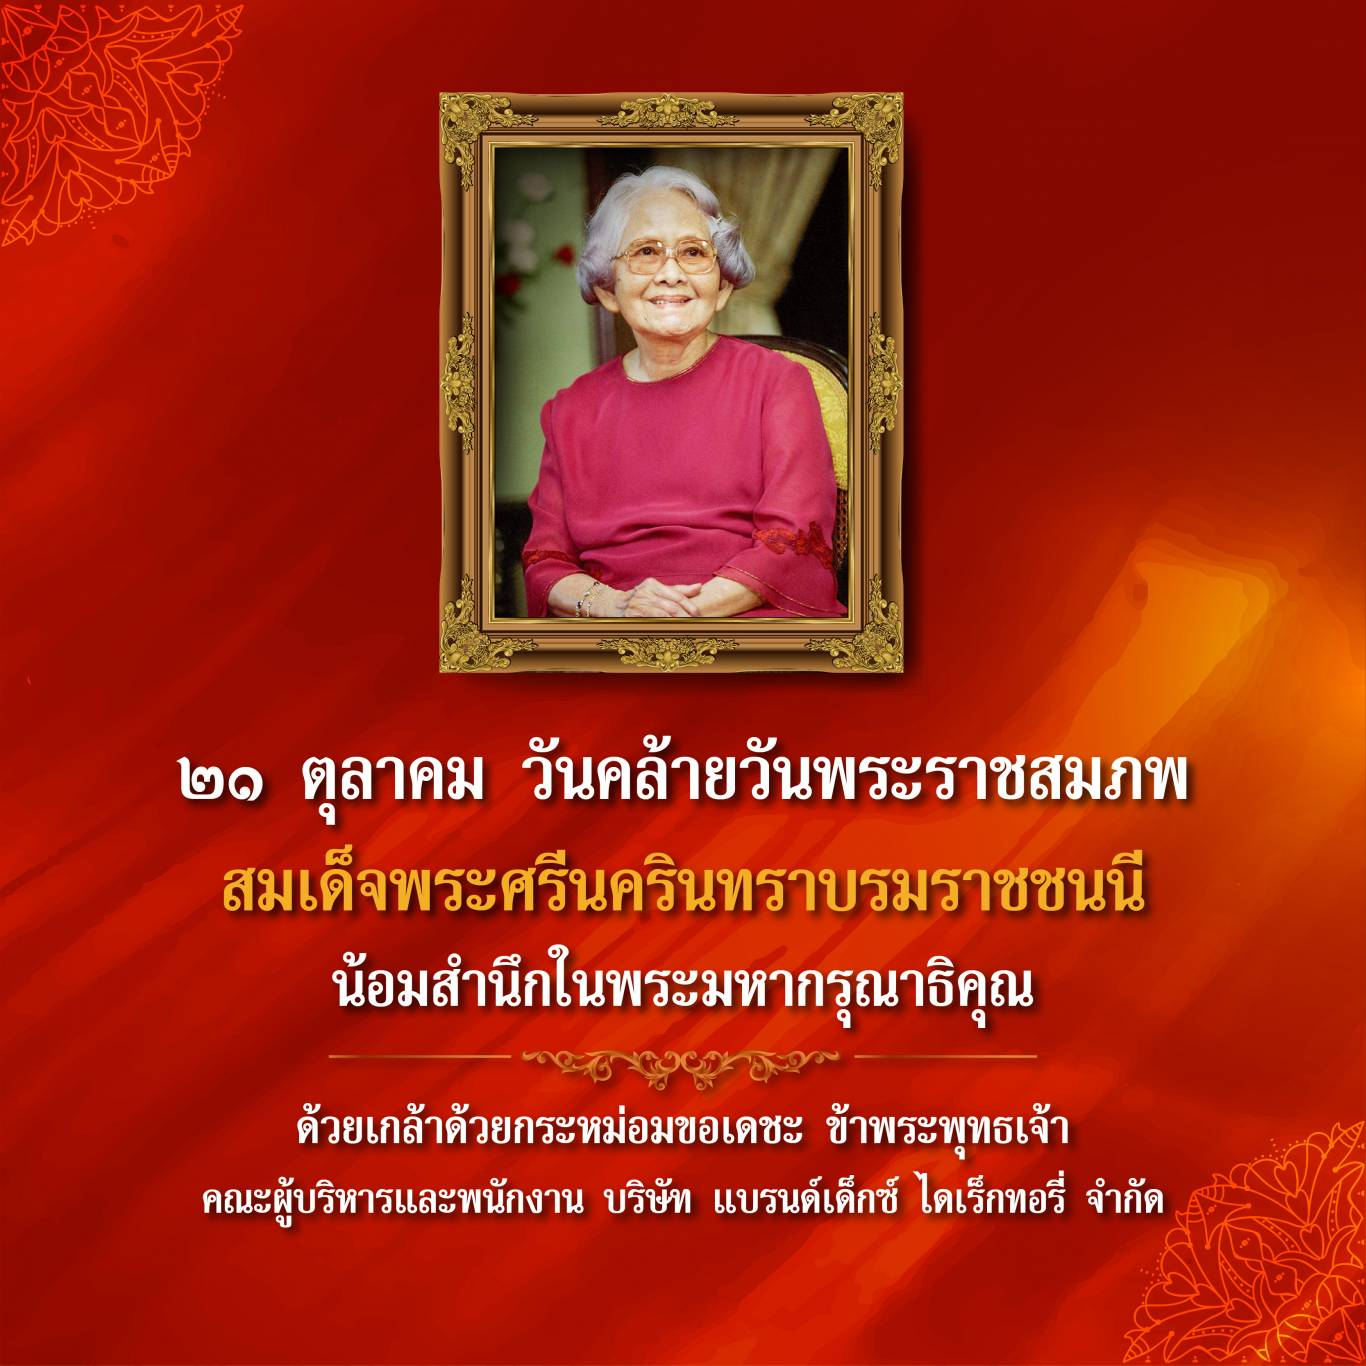 https://www.pagesthai.com